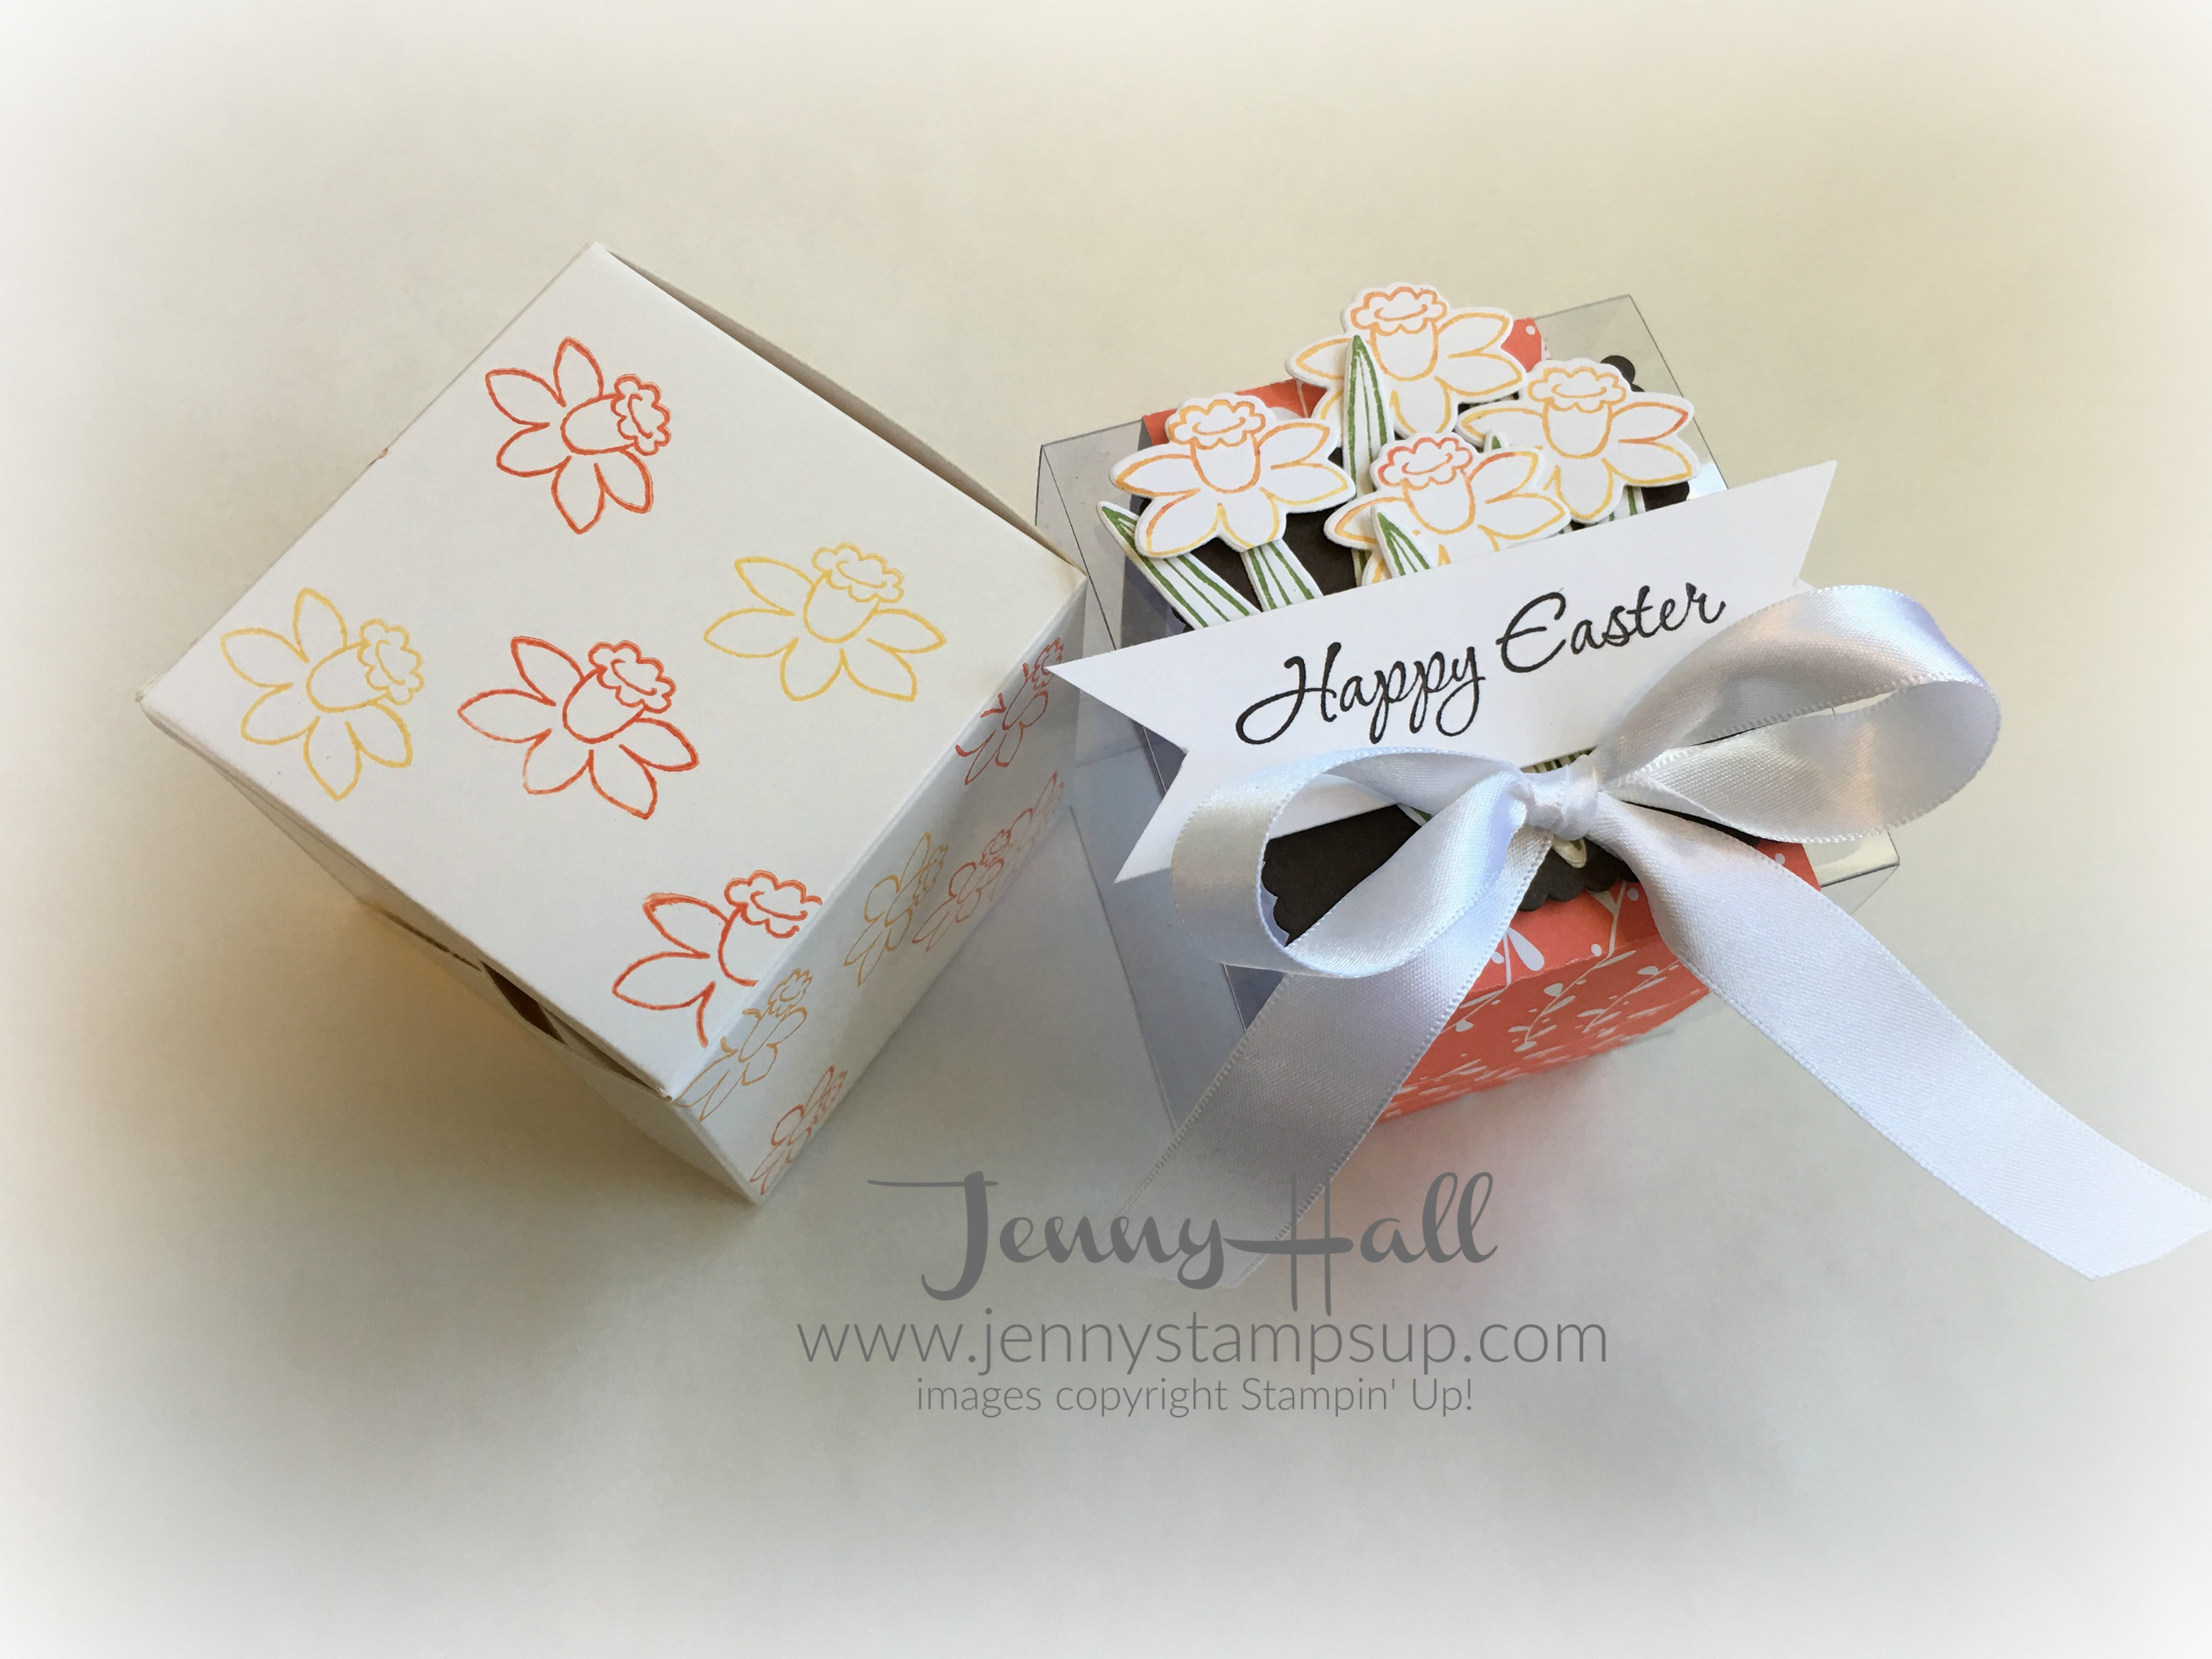 How to decorate a gift box for easter with video jenny hall designs decorated easter gift box by jenny hall jennystampsup negle Image collections